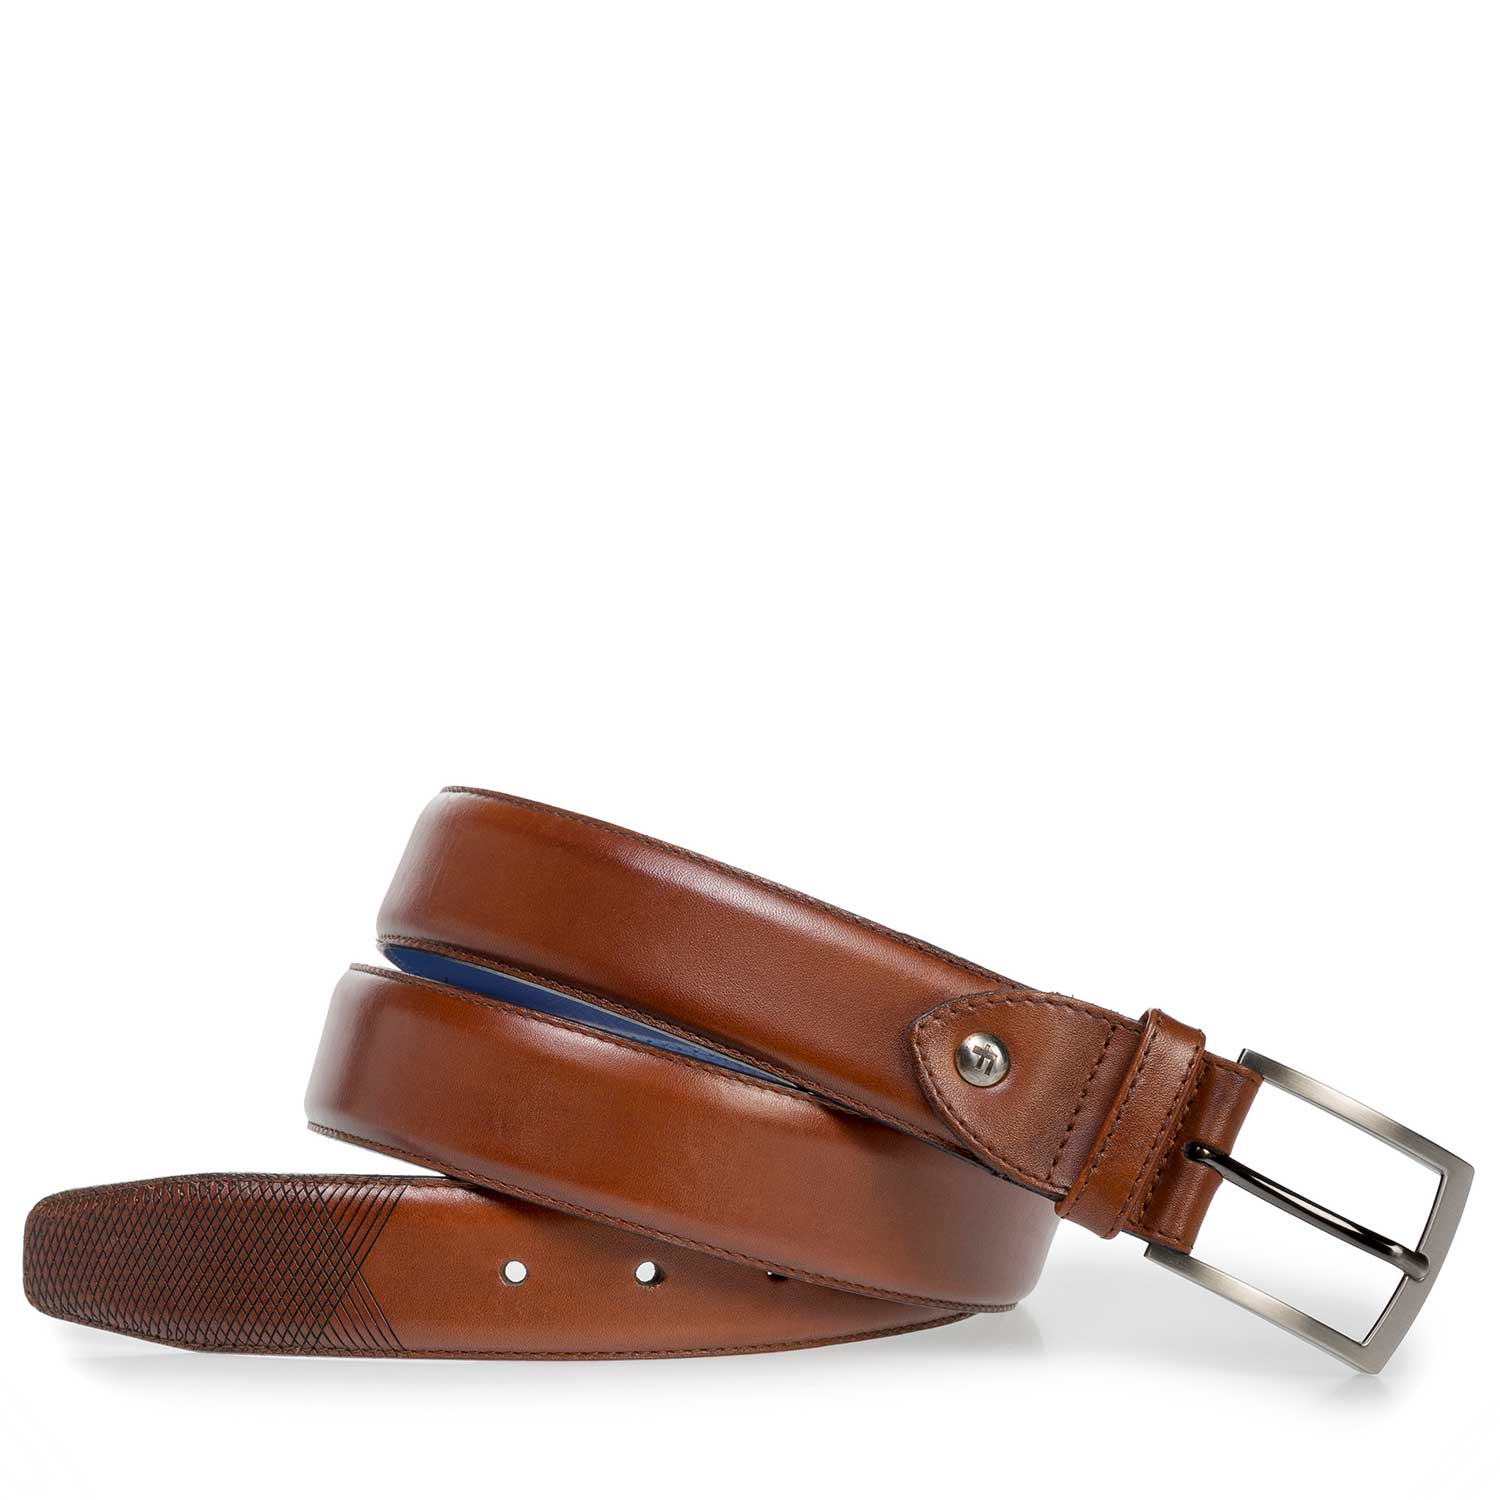 75211/00 - Cognac-coloured leather belt with laser print